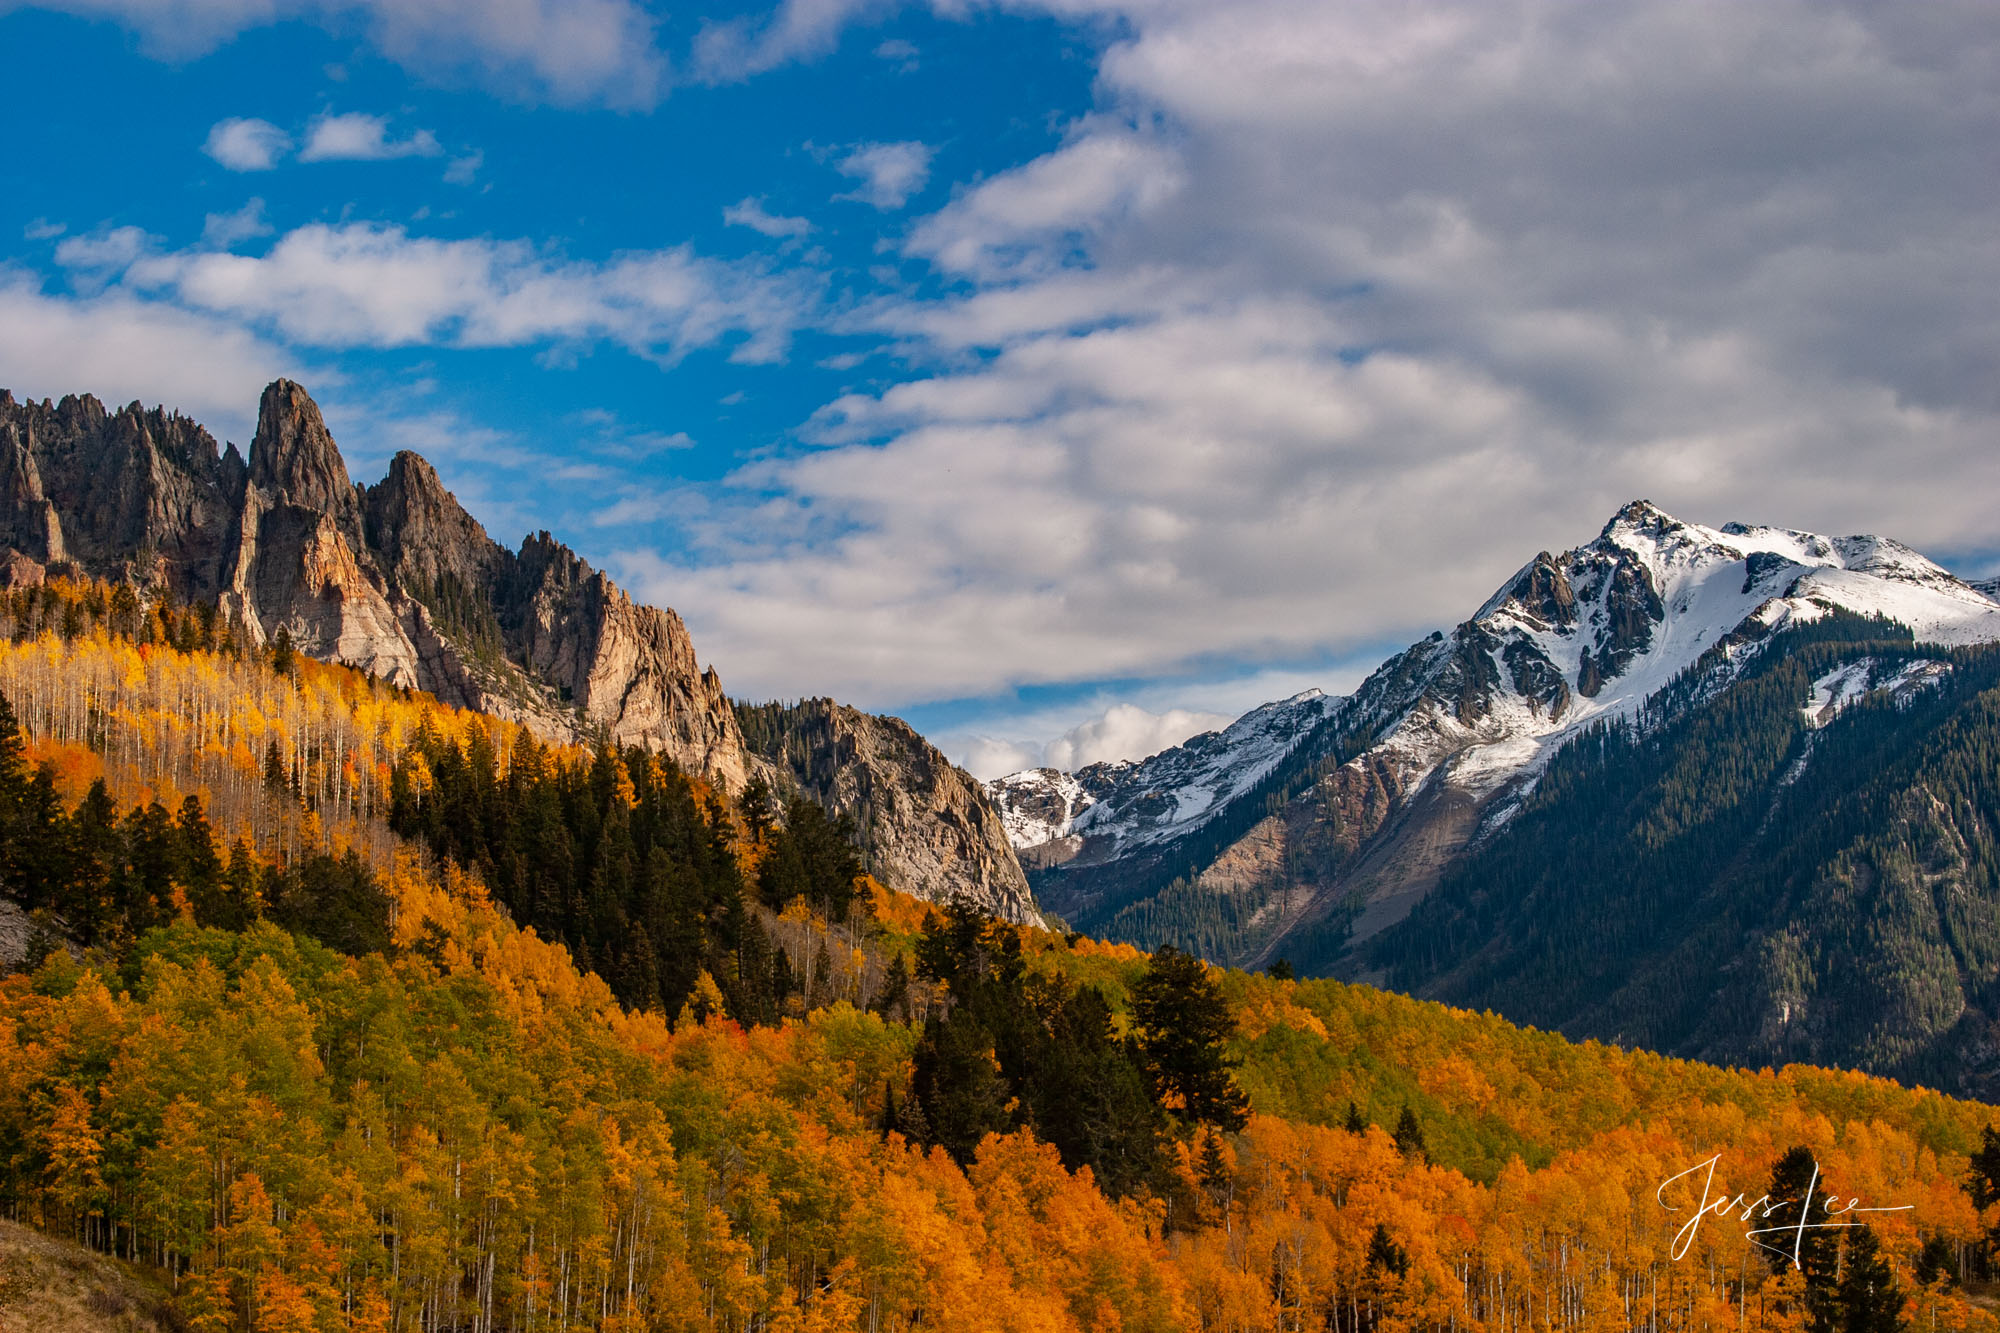 Fine Art Limited Edition Photography of Colorado. Colorado Autumn Landscapes of Trees on Lizard Pass. This is part of the luxurious...